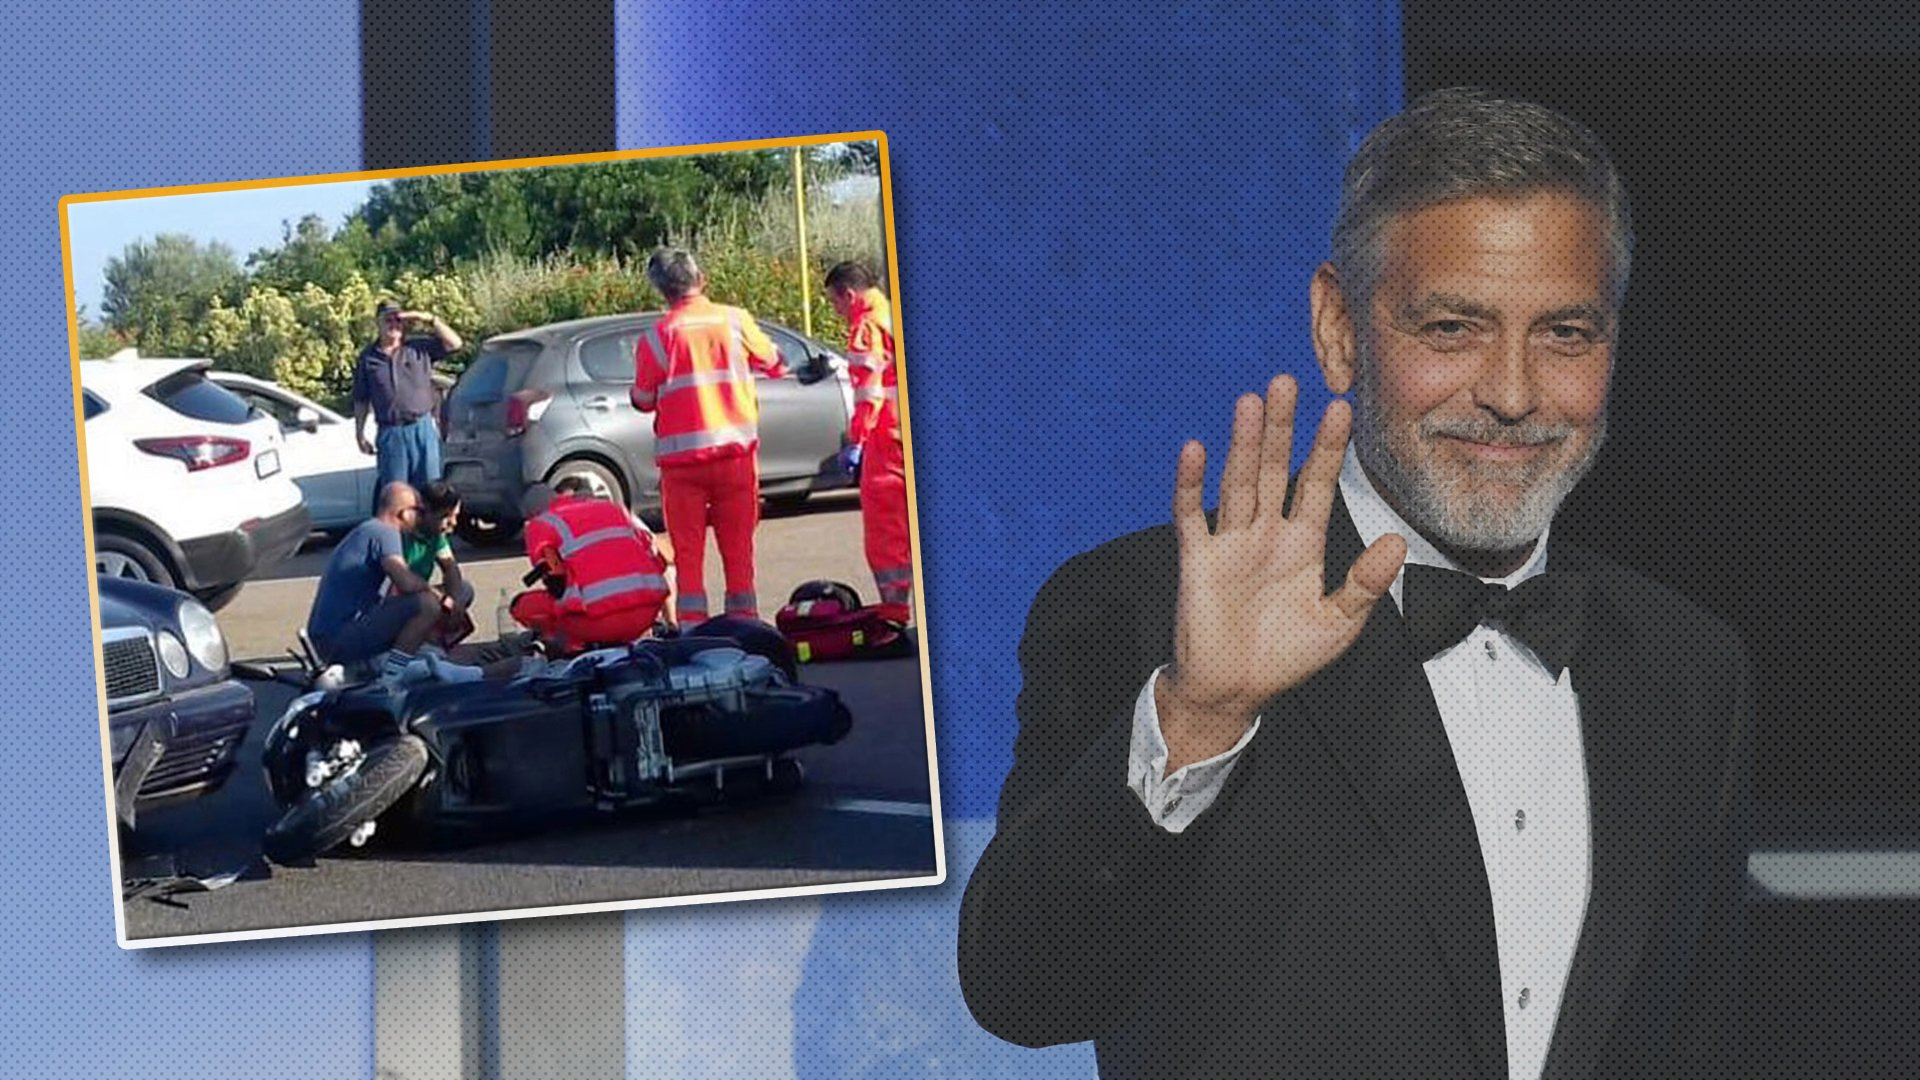 Actor George Clooney Recovering After Serious Motorcycle Crash in 1920x1080